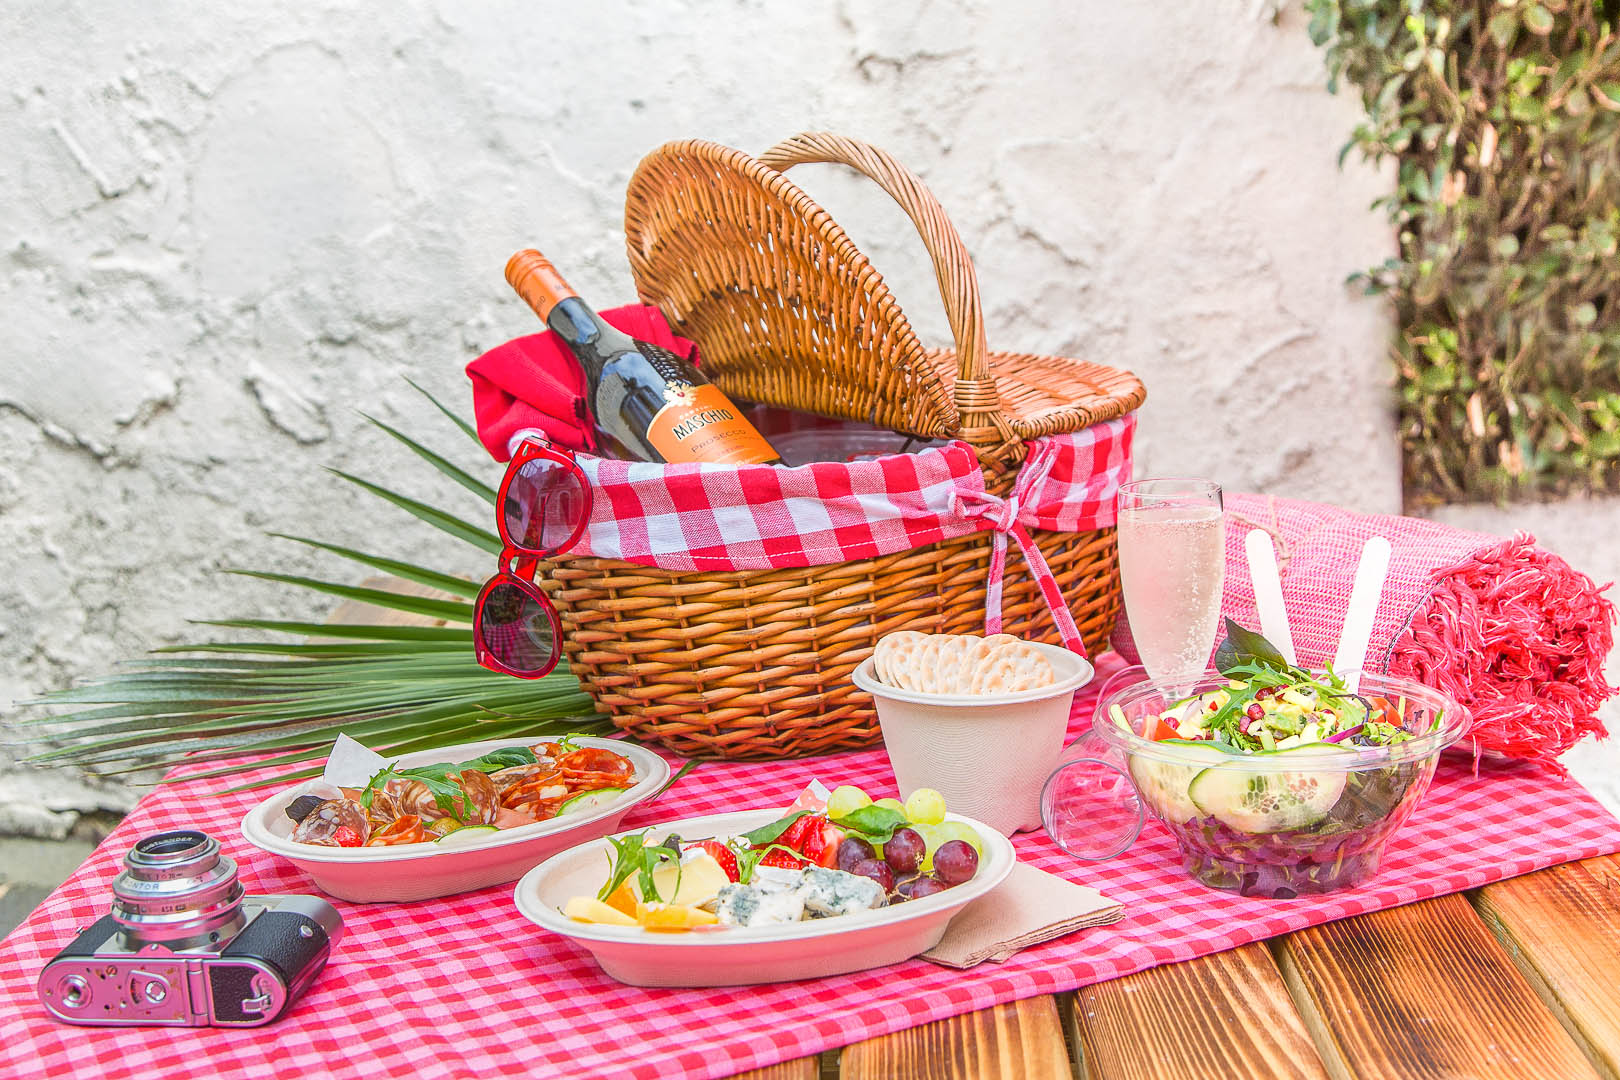 Picnic on a table with basket | Food Photography